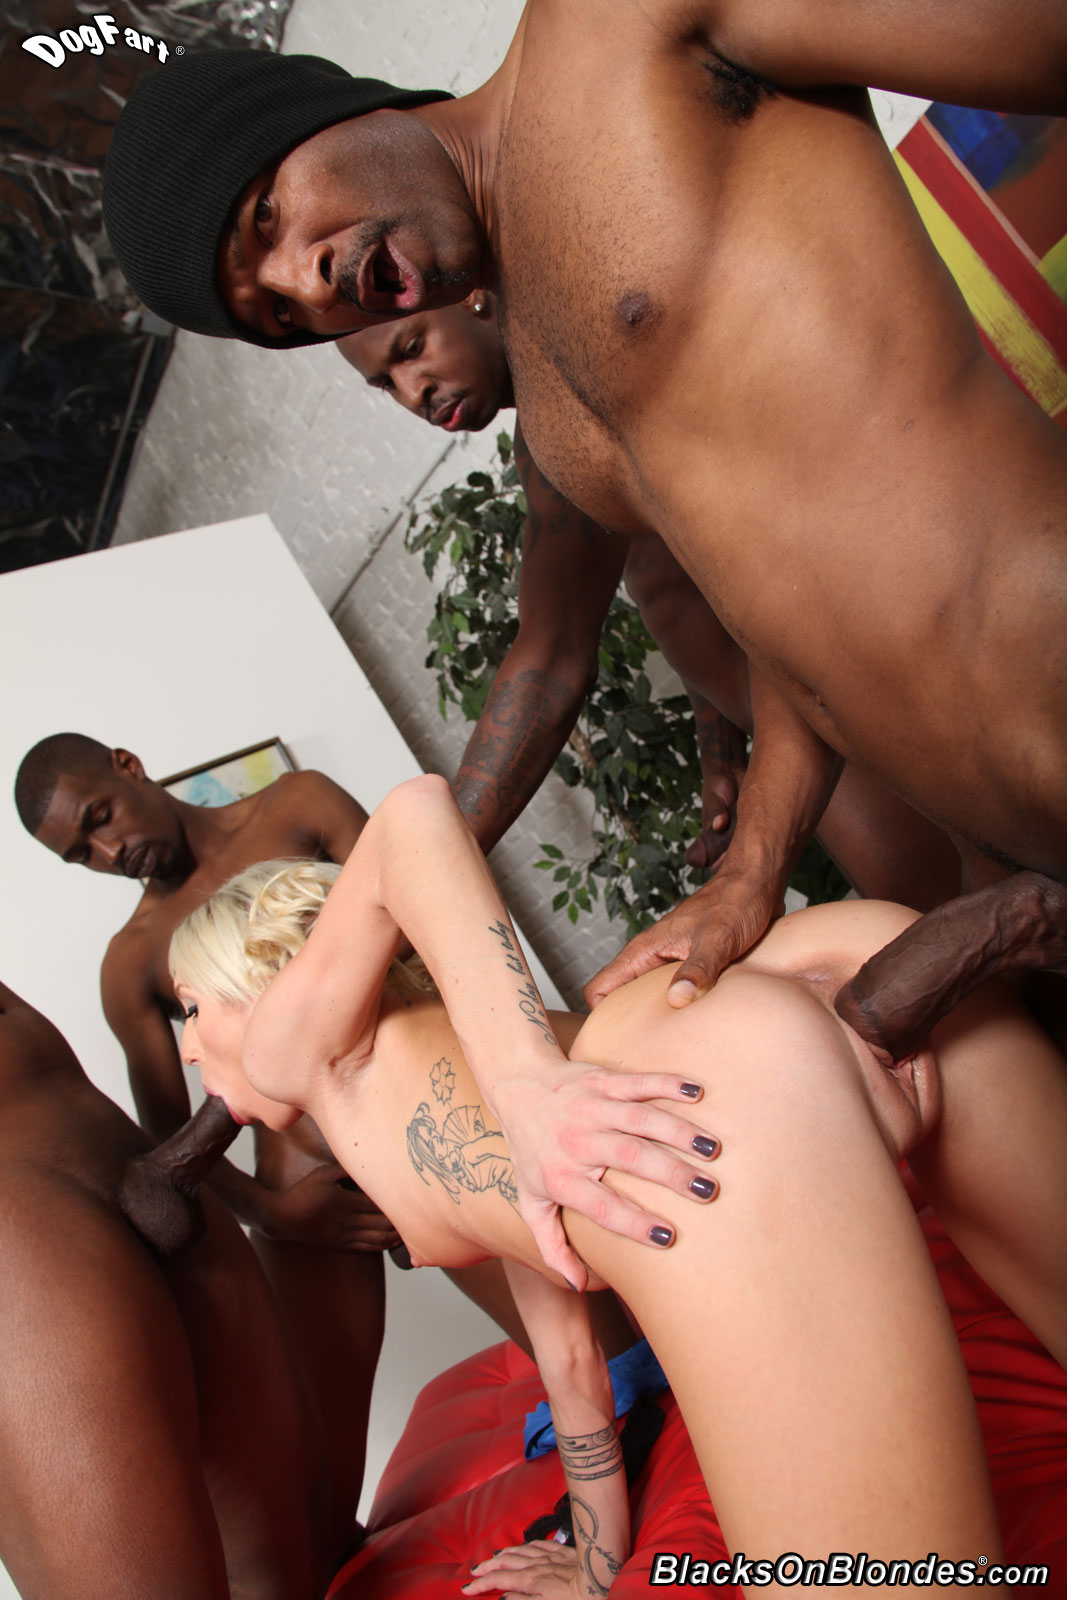 Join told Xxx blacks on blondes more